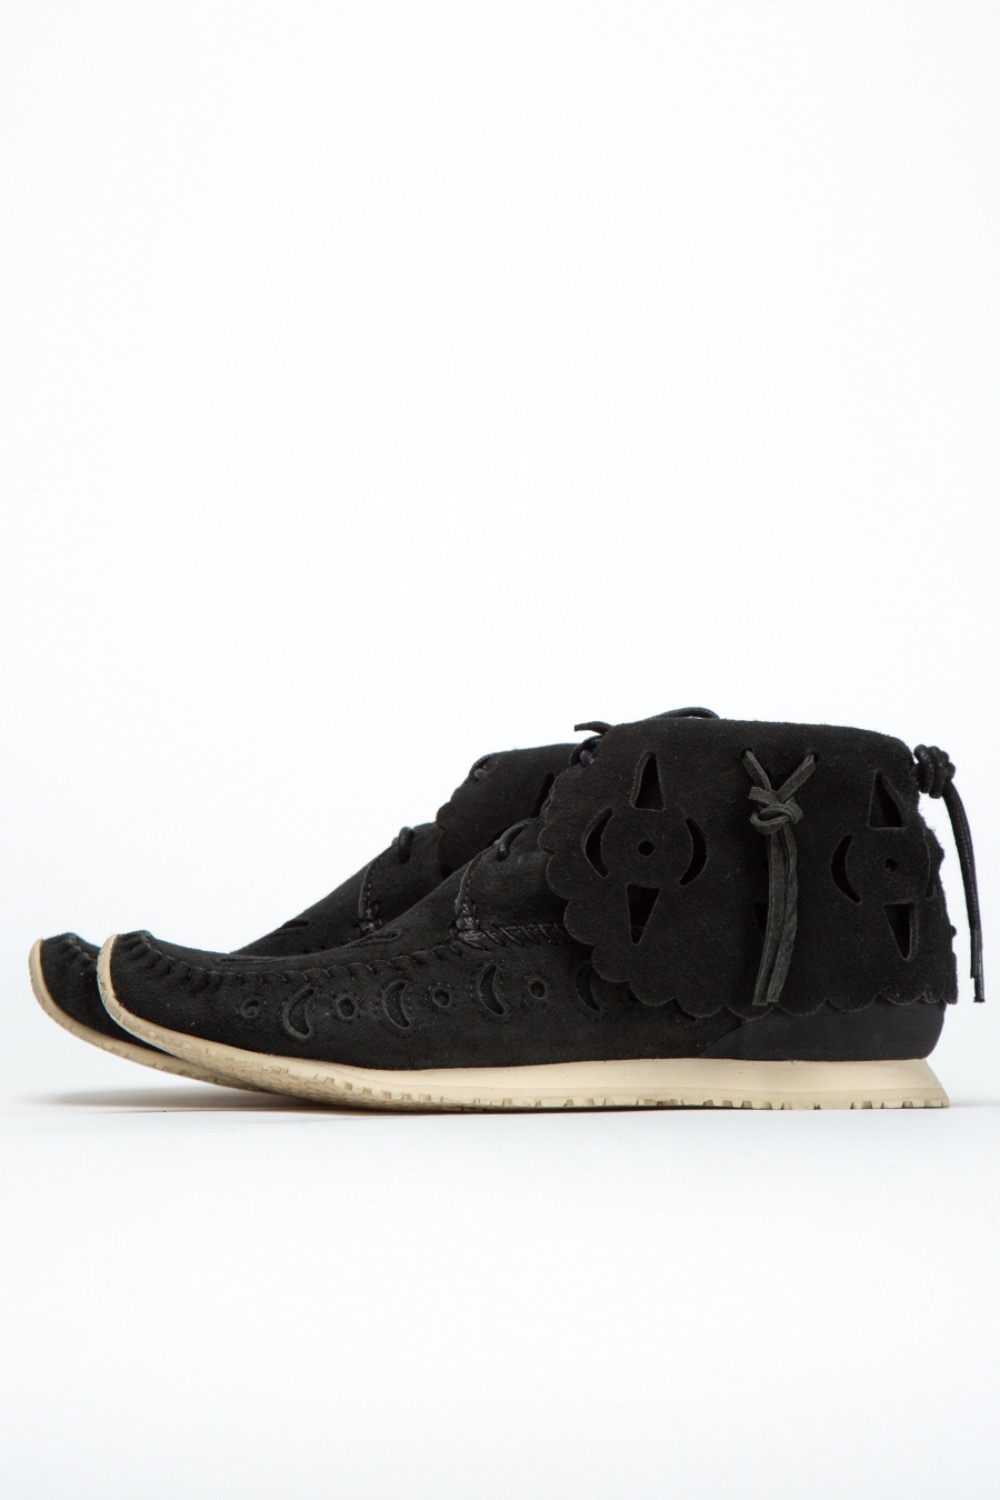 FBT BEARFOOT PERF-FOLK BLACK